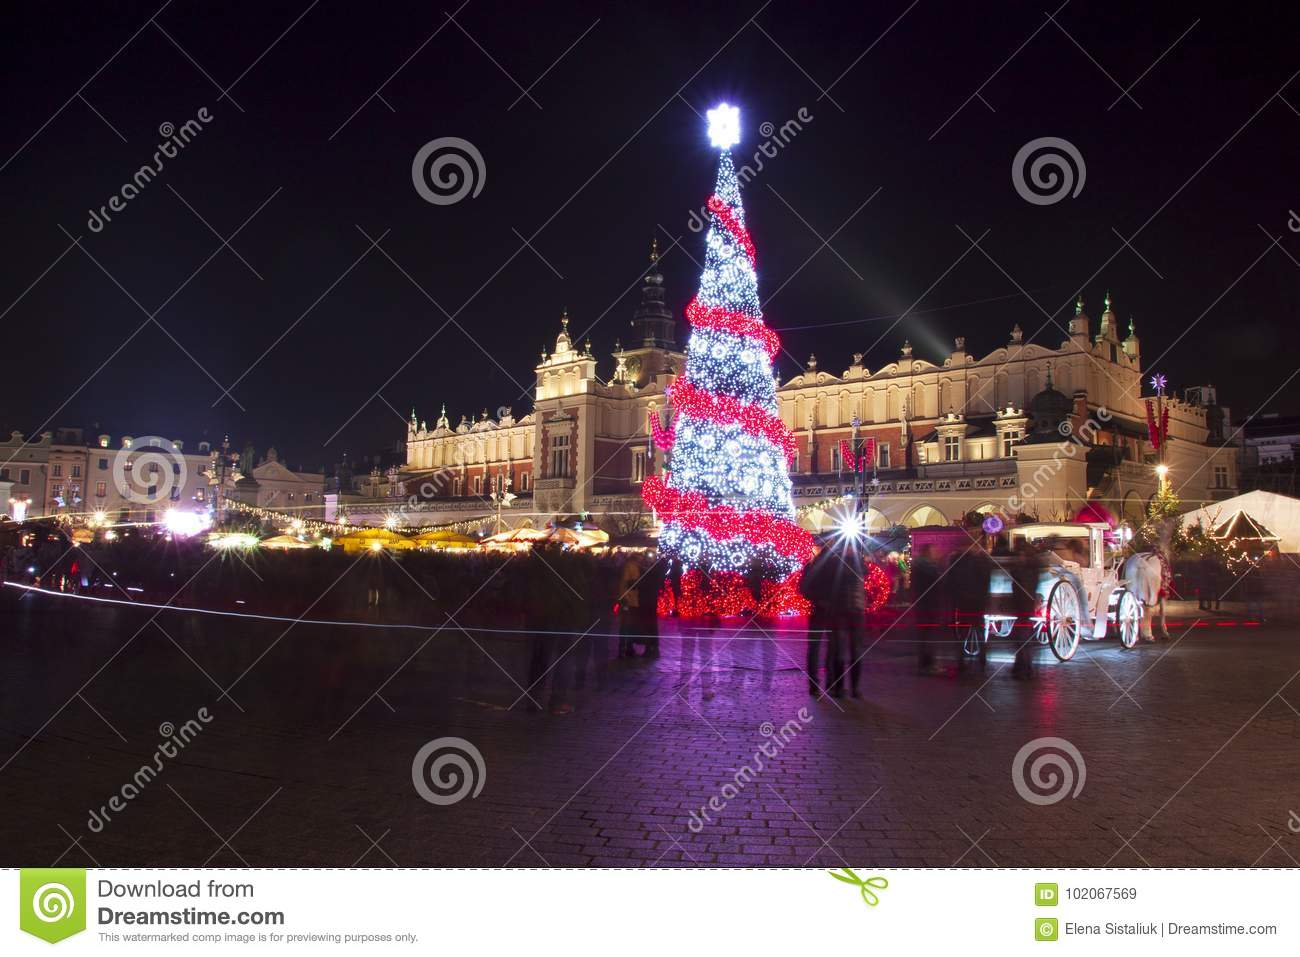 Poland, Krakow, Main Market square and Cloth Hall in winter, during Christmas fairs decorated with Christmas tree.